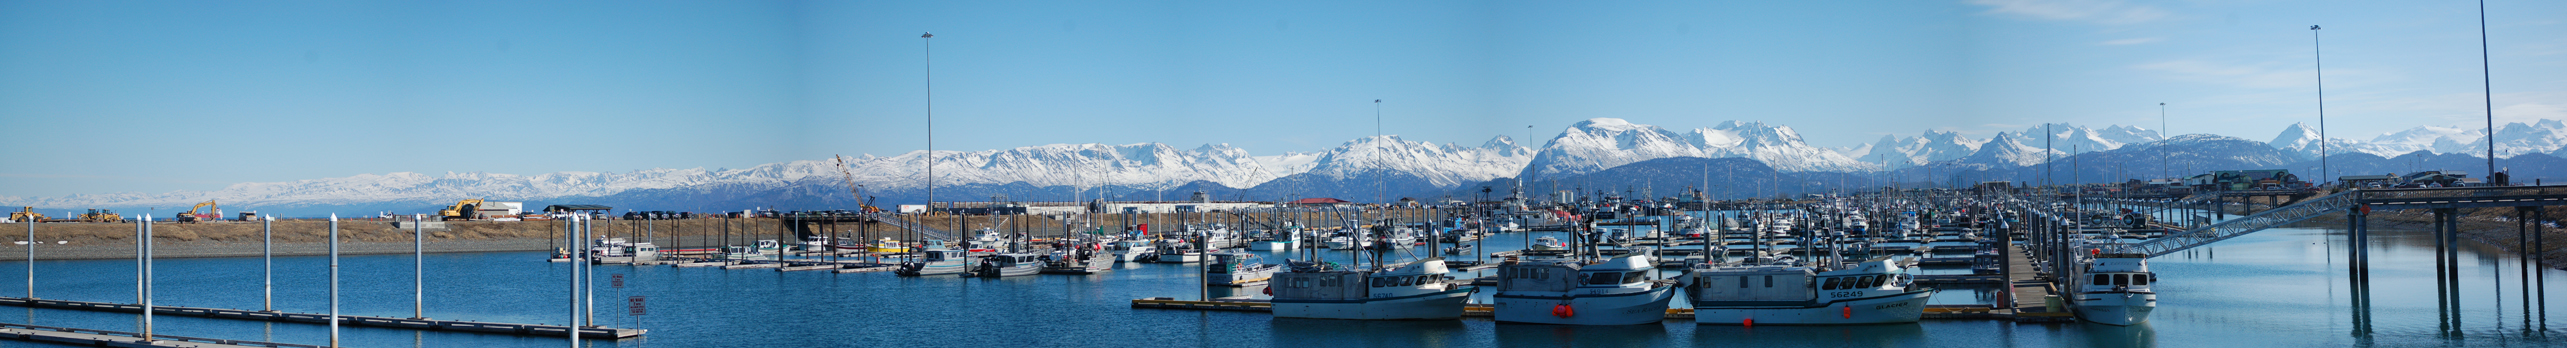 """Homer's port and harbor have been removed from the Kachemak Bay Critical Habitat Area. """"In a nutshell (Senate Bill) 148 is about recognizing the balance between jobs and environmental protection,"""" said the bill's sponsor, Sen. Peter Micciche, R-Soldotna.-Photo by Michael Armstrong, Homer News"""